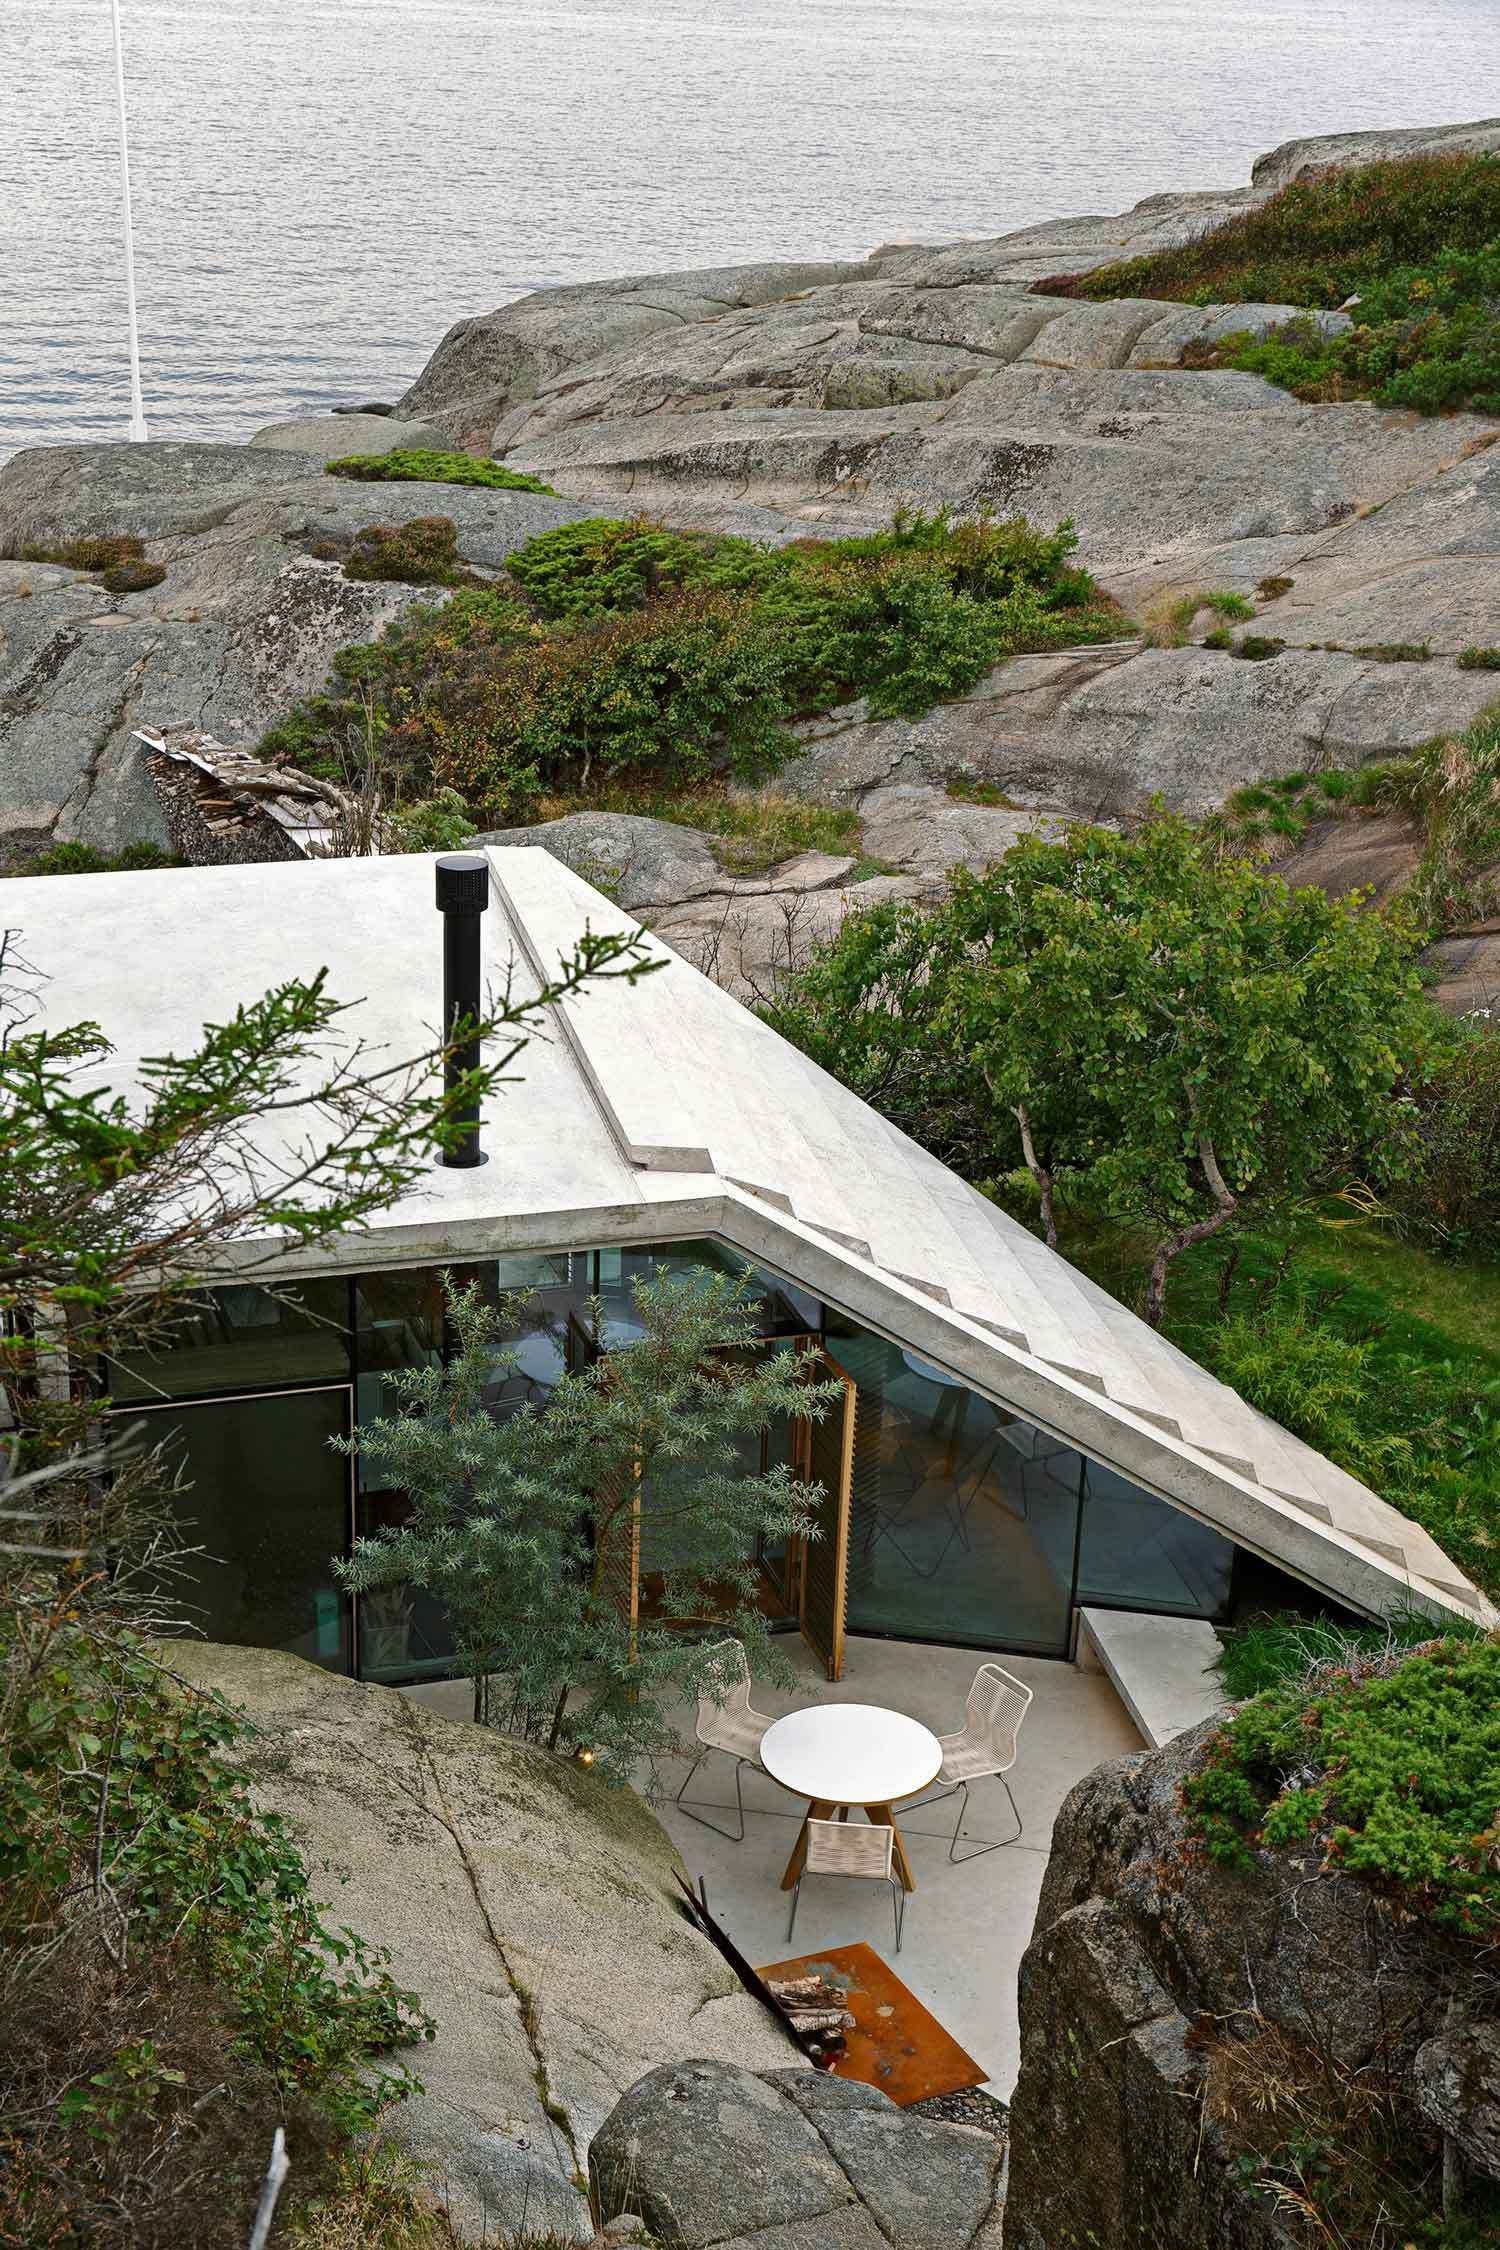 Knapphullet: Home on a Cliff in Norway by Lund Hagem | Yellowtrace